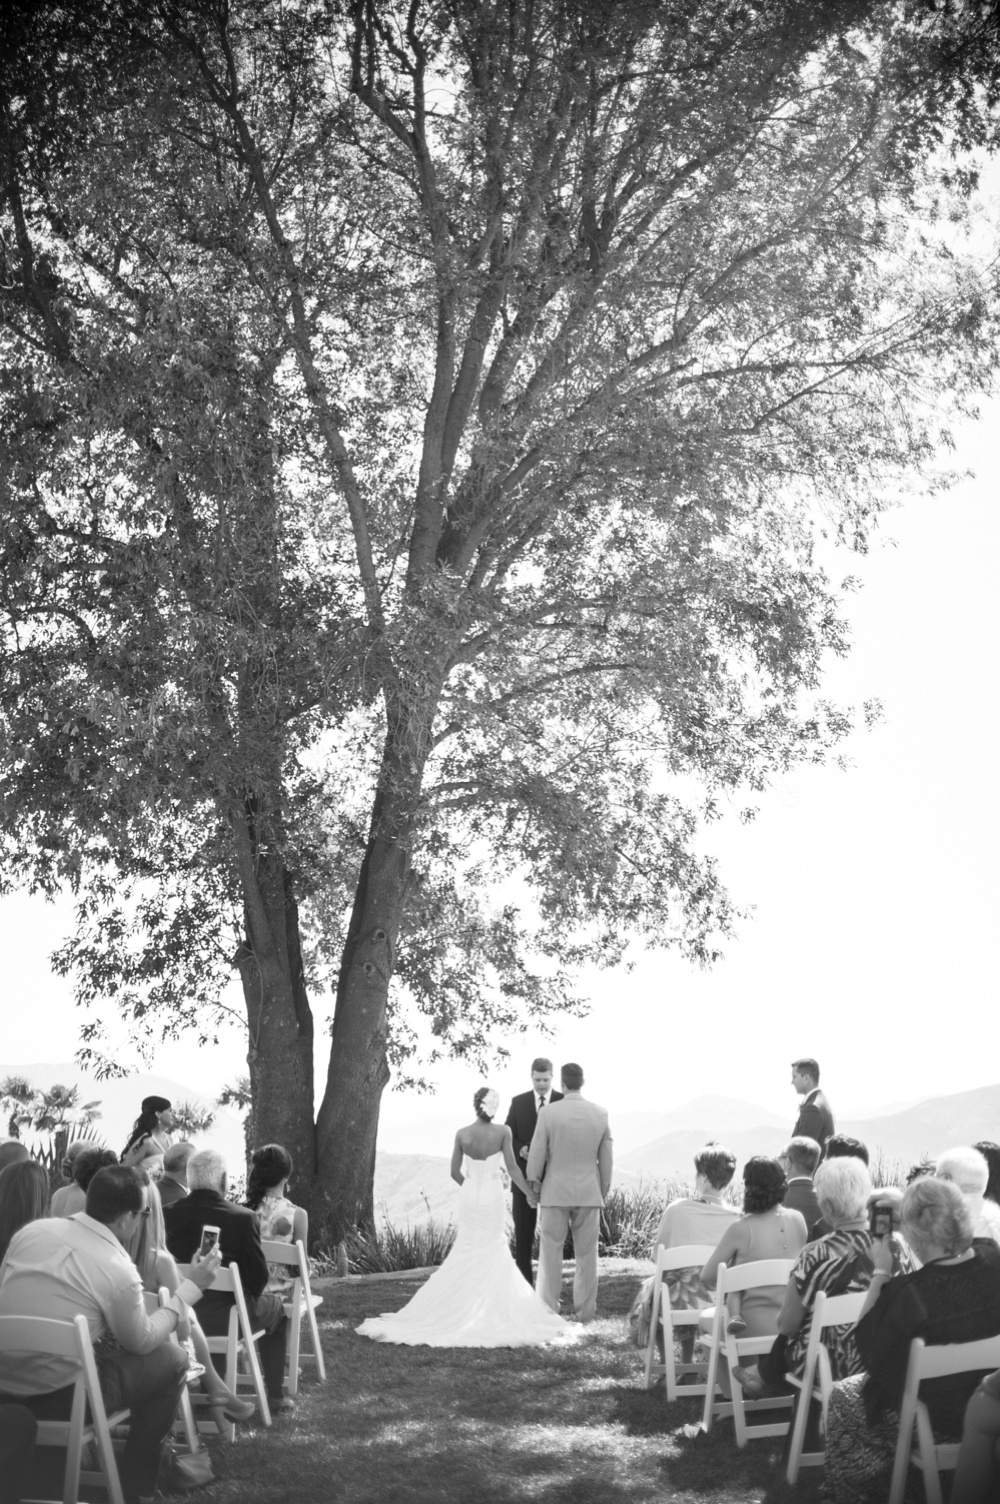 condors_nest_ranch_wedding_photographyJ.JPG